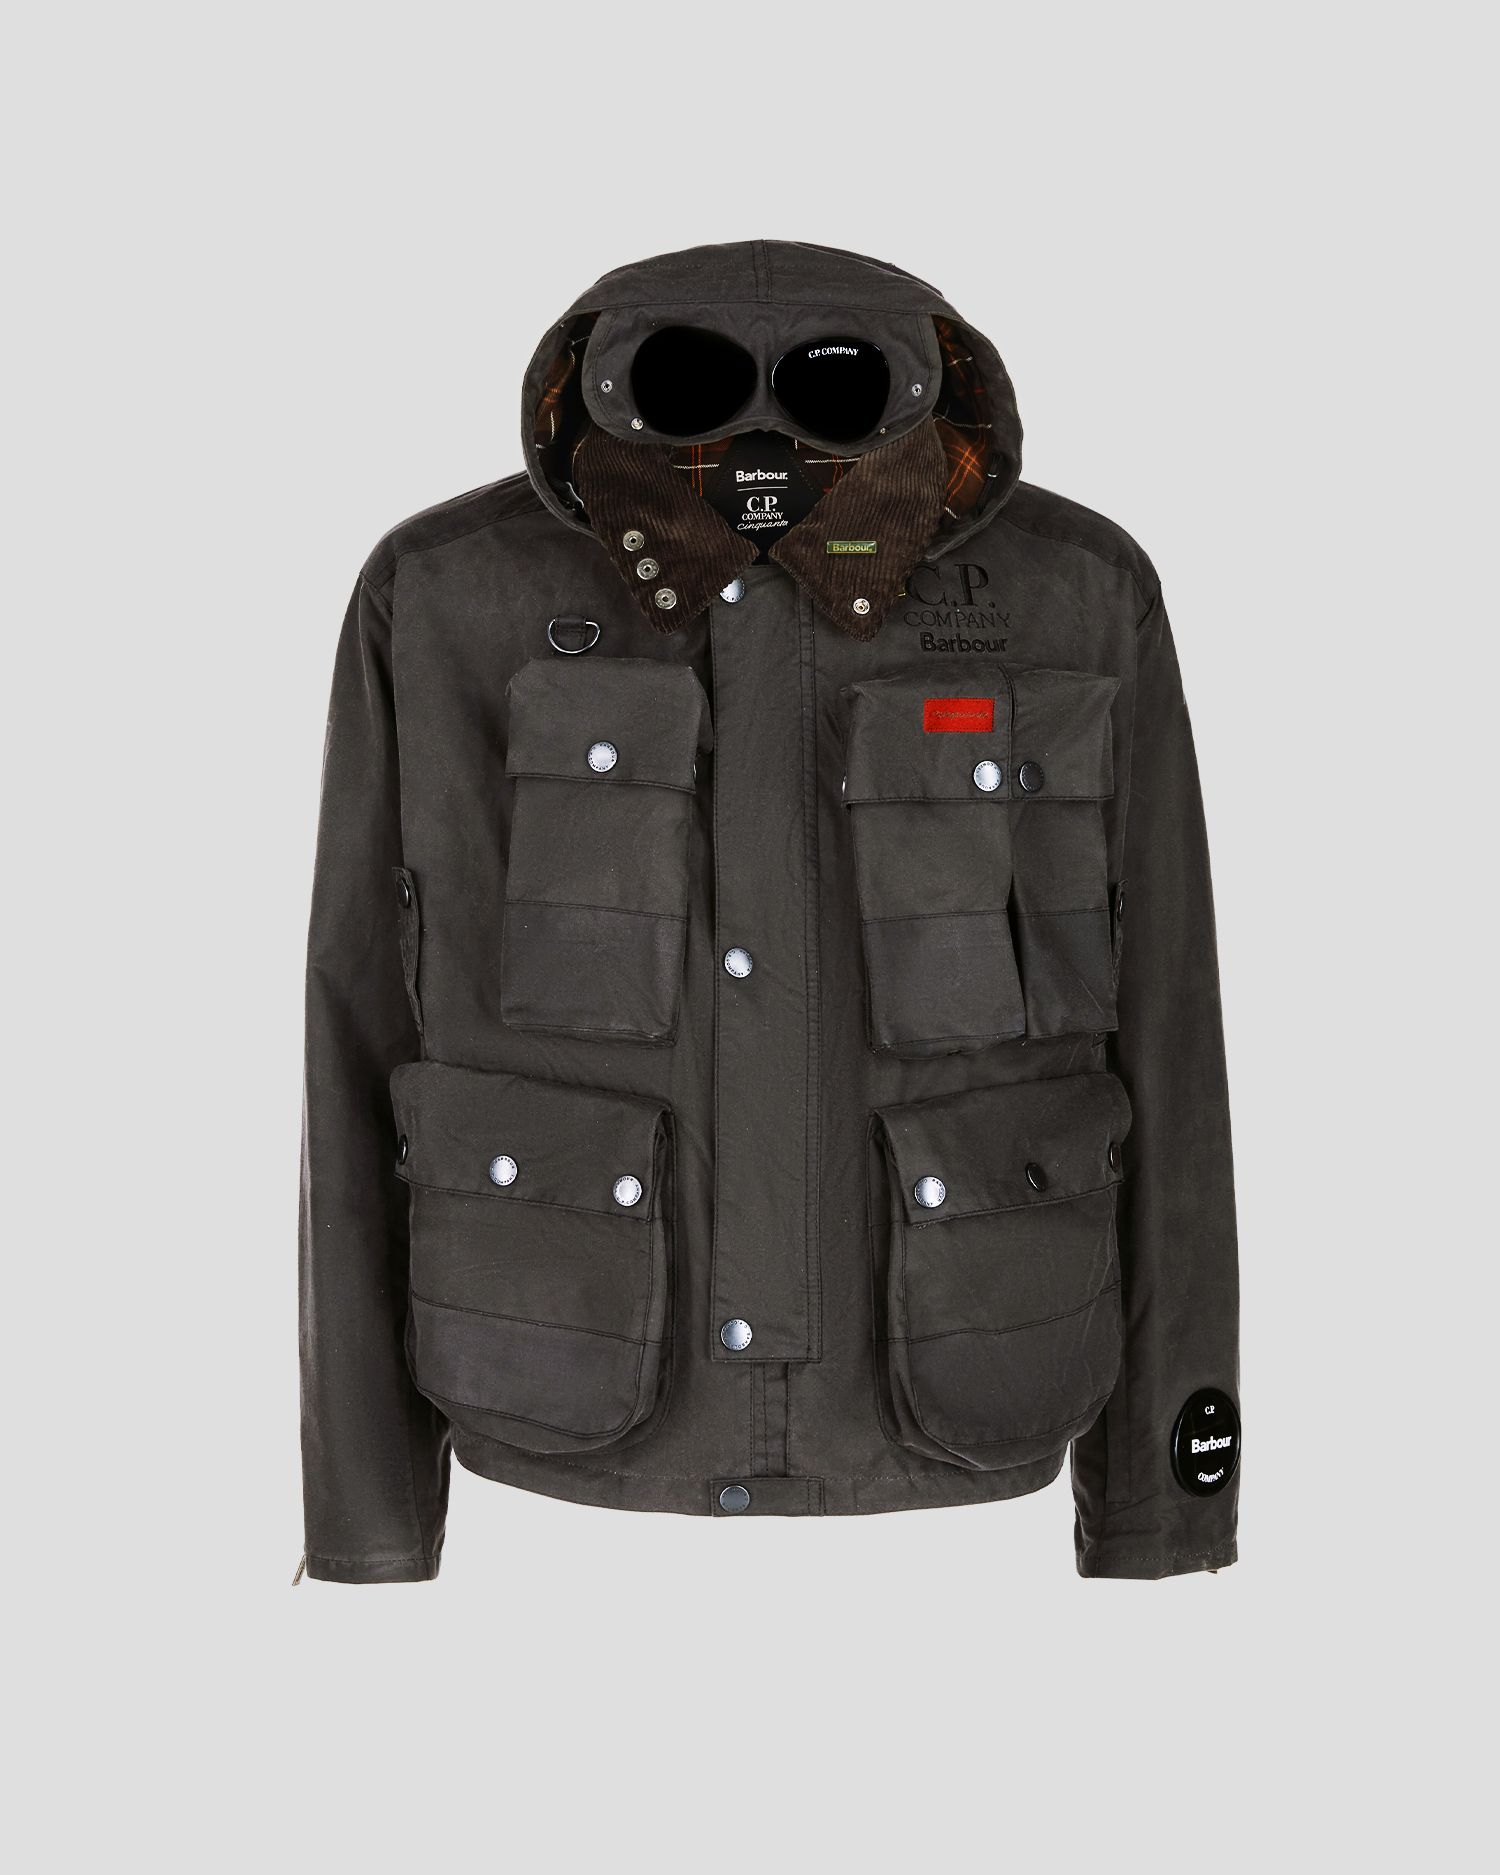 Barbour x C.P. Company Is Ready To Take Flight